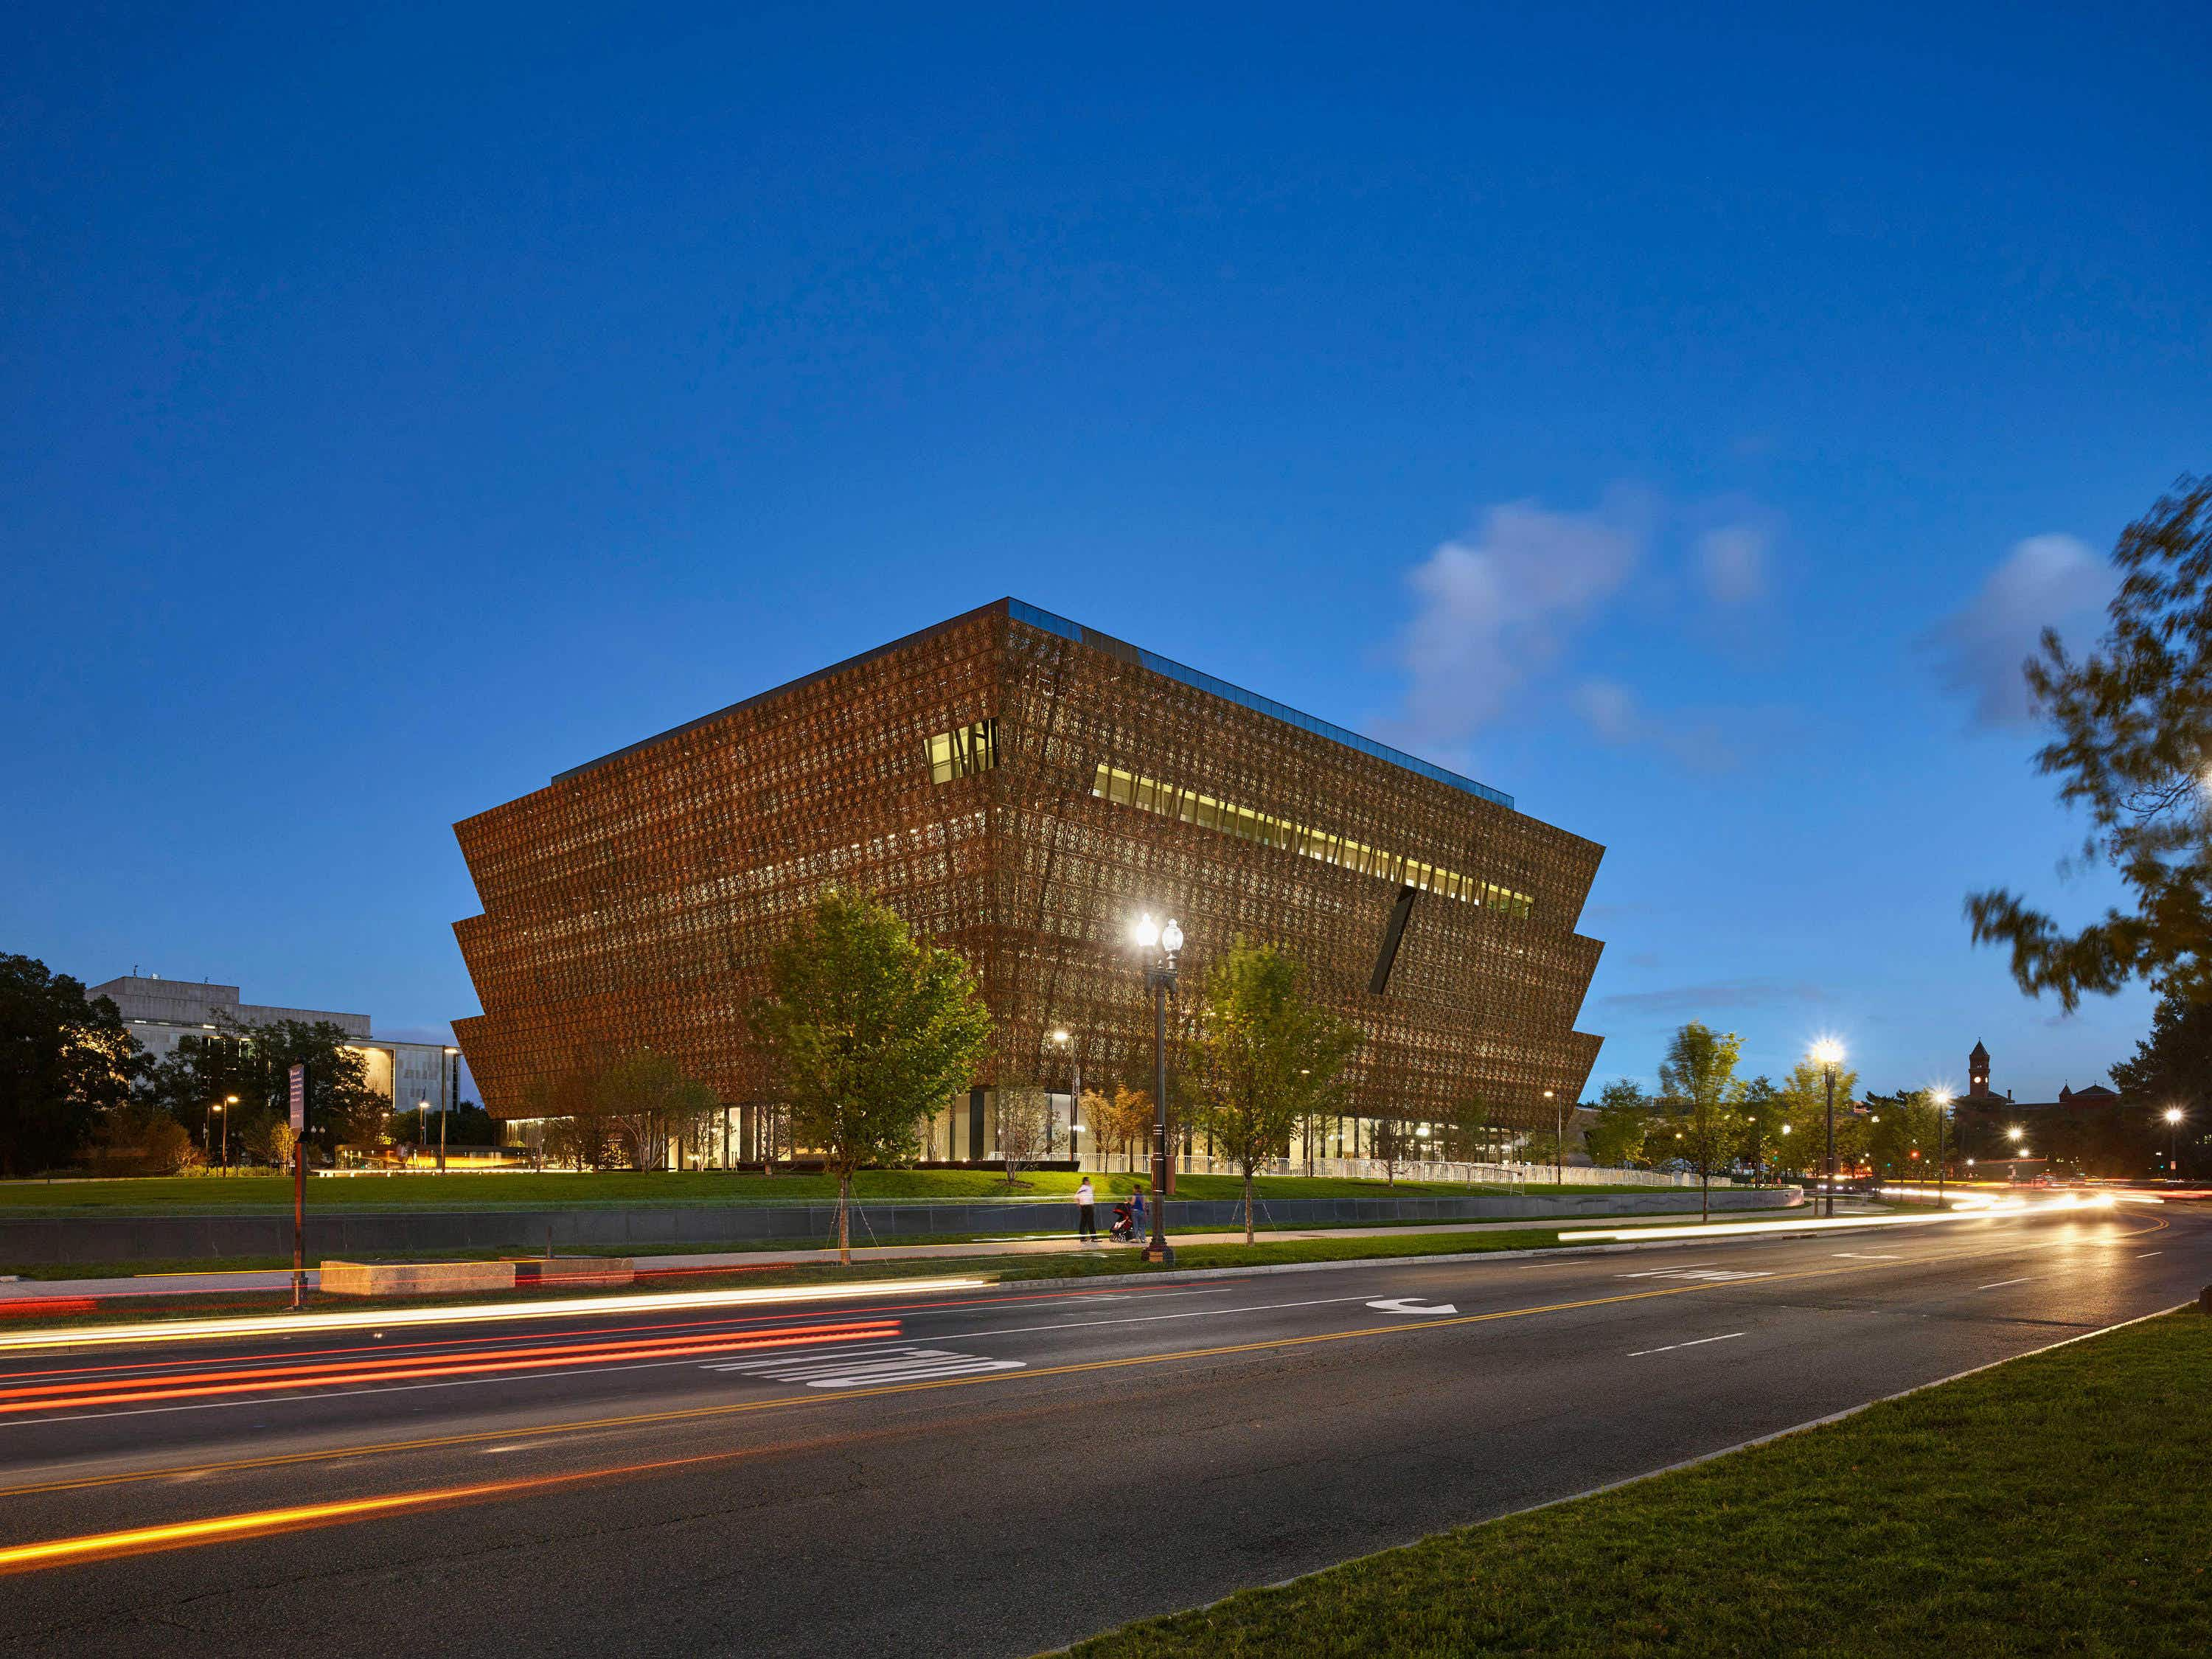 The National Museum of African American History and Culture is the best design of 2017